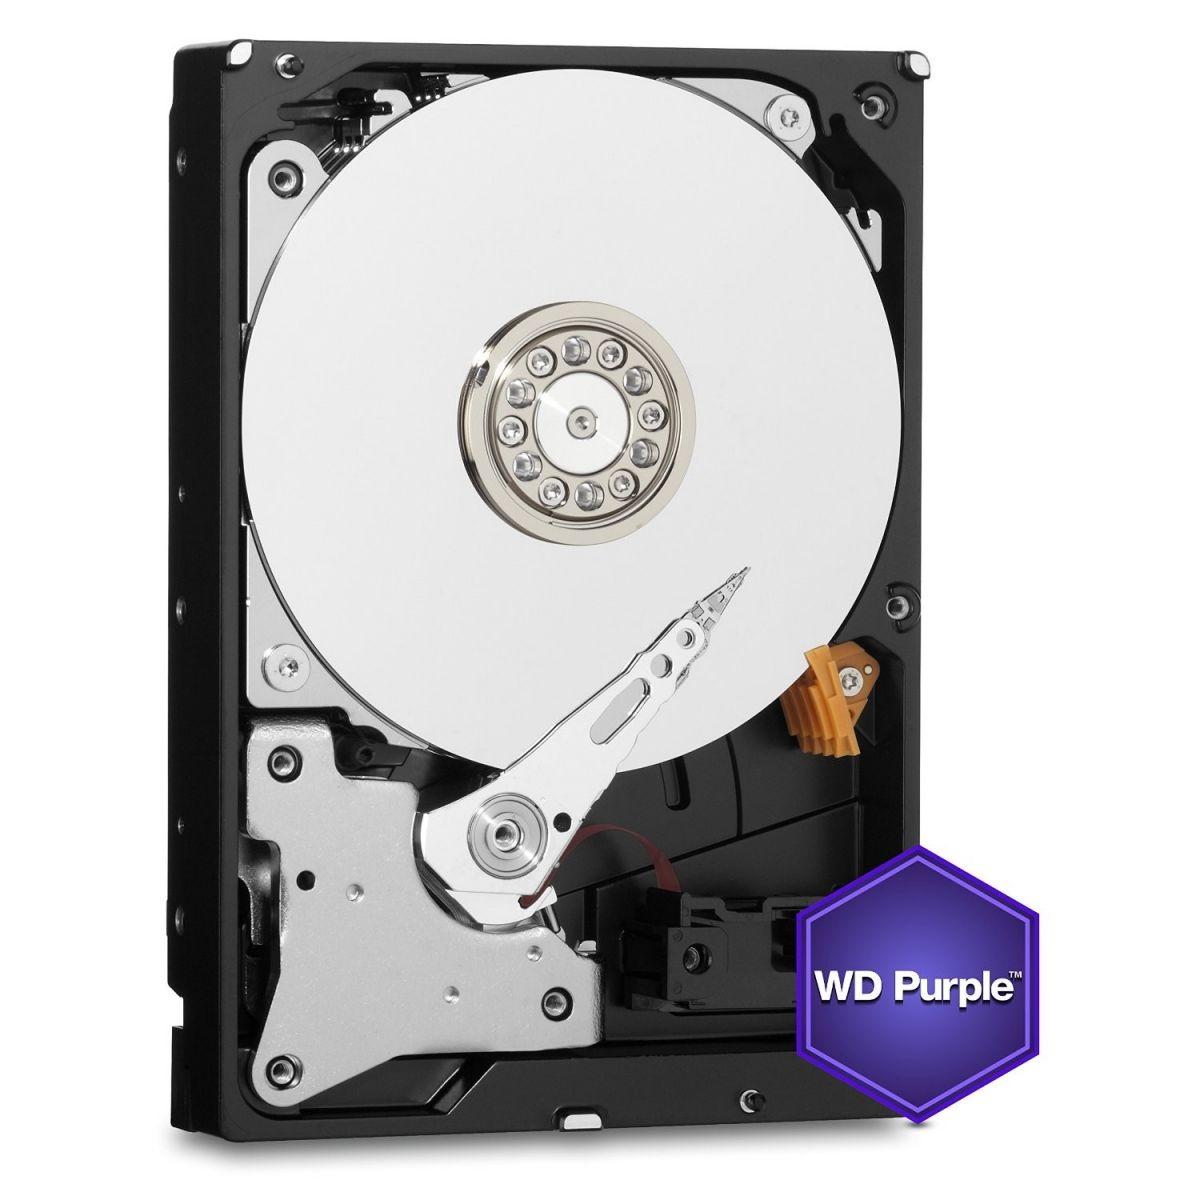 Hd 3Tb Wd Purple Wd30Purx Sata De 6 Gb| S